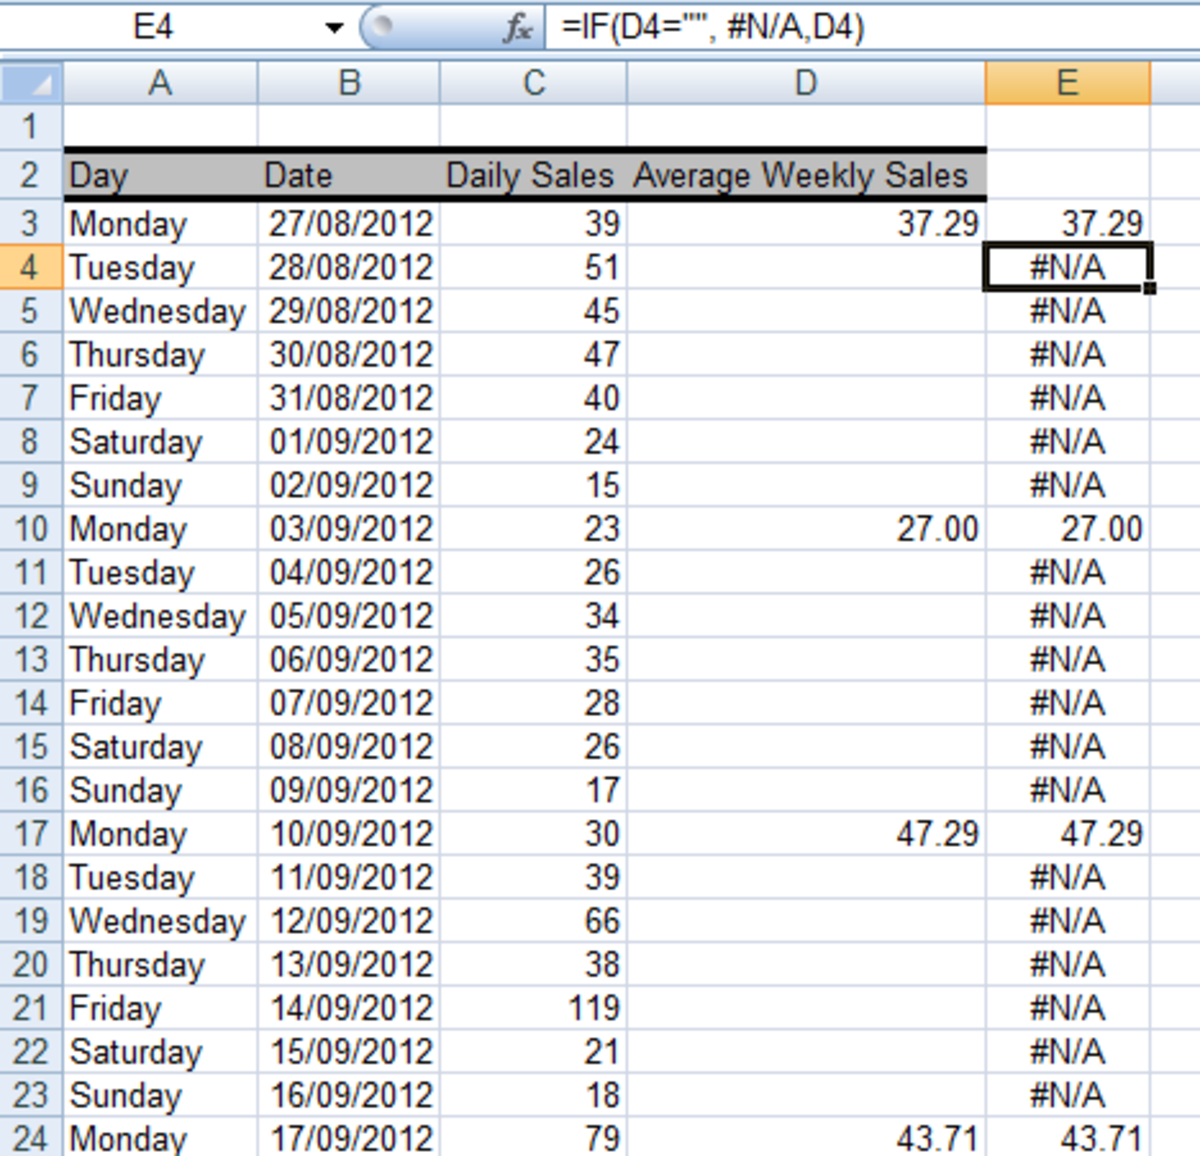 Ediblewildsus  Pleasing How To Get Excel  And  To Ignore Empty Cells In A Chart Or  With Glamorous Using The If Function In A Formula To Convert Empty Cells To Na With Breathtaking Excel Password Recovery Also Merge Excel Files In Addition How To Protect Cells In Excel And Delete Empty Rows In Excel As Well As How To Calculate Age In Excel Additionally If And Statement Excel From Turbofuturecom With Ediblewildsus  Glamorous How To Get Excel  And  To Ignore Empty Cells In A Chart Or  With Breathtaking Using The If Function In A Formula To Convert Empty Cells To Na And Pleasing Excel Password Recovery Also Merge Excel Files In Addition How To Protect Cells In Excel From Turbofuturecom